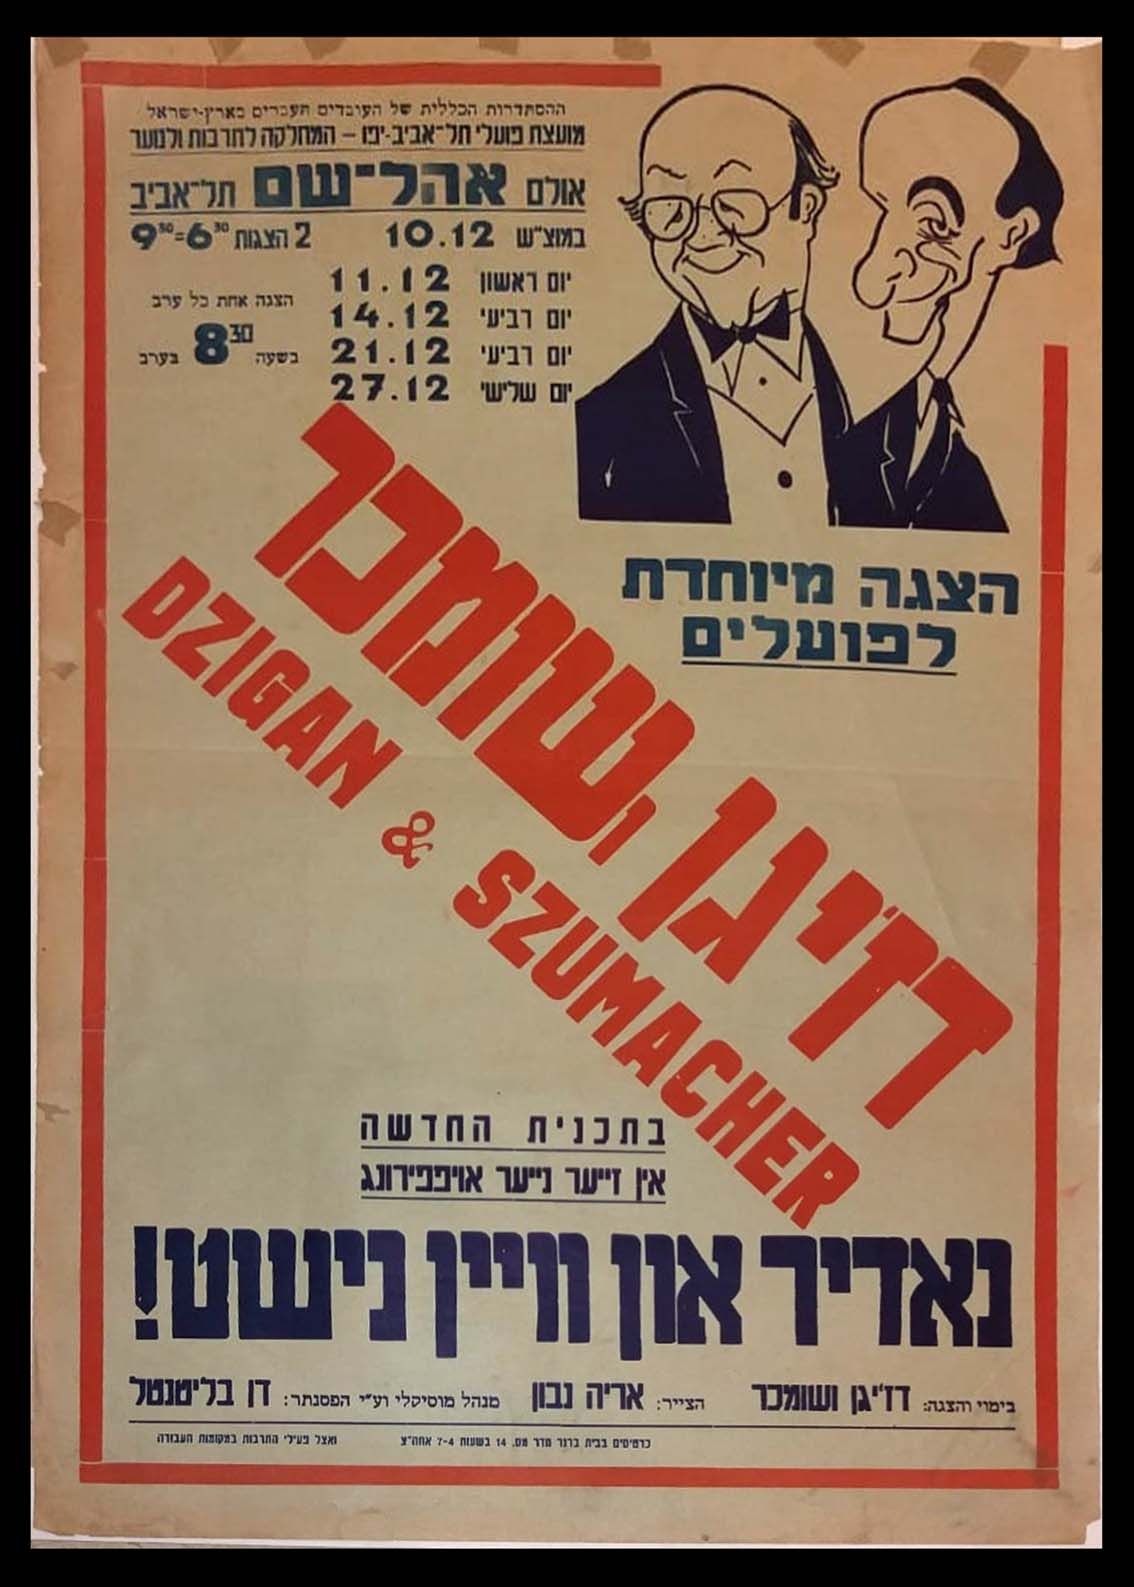 Httpwww Overlordsofchaos Comhtmlorigin Of The Word Jew Html: Yiddish Poster By Jewish